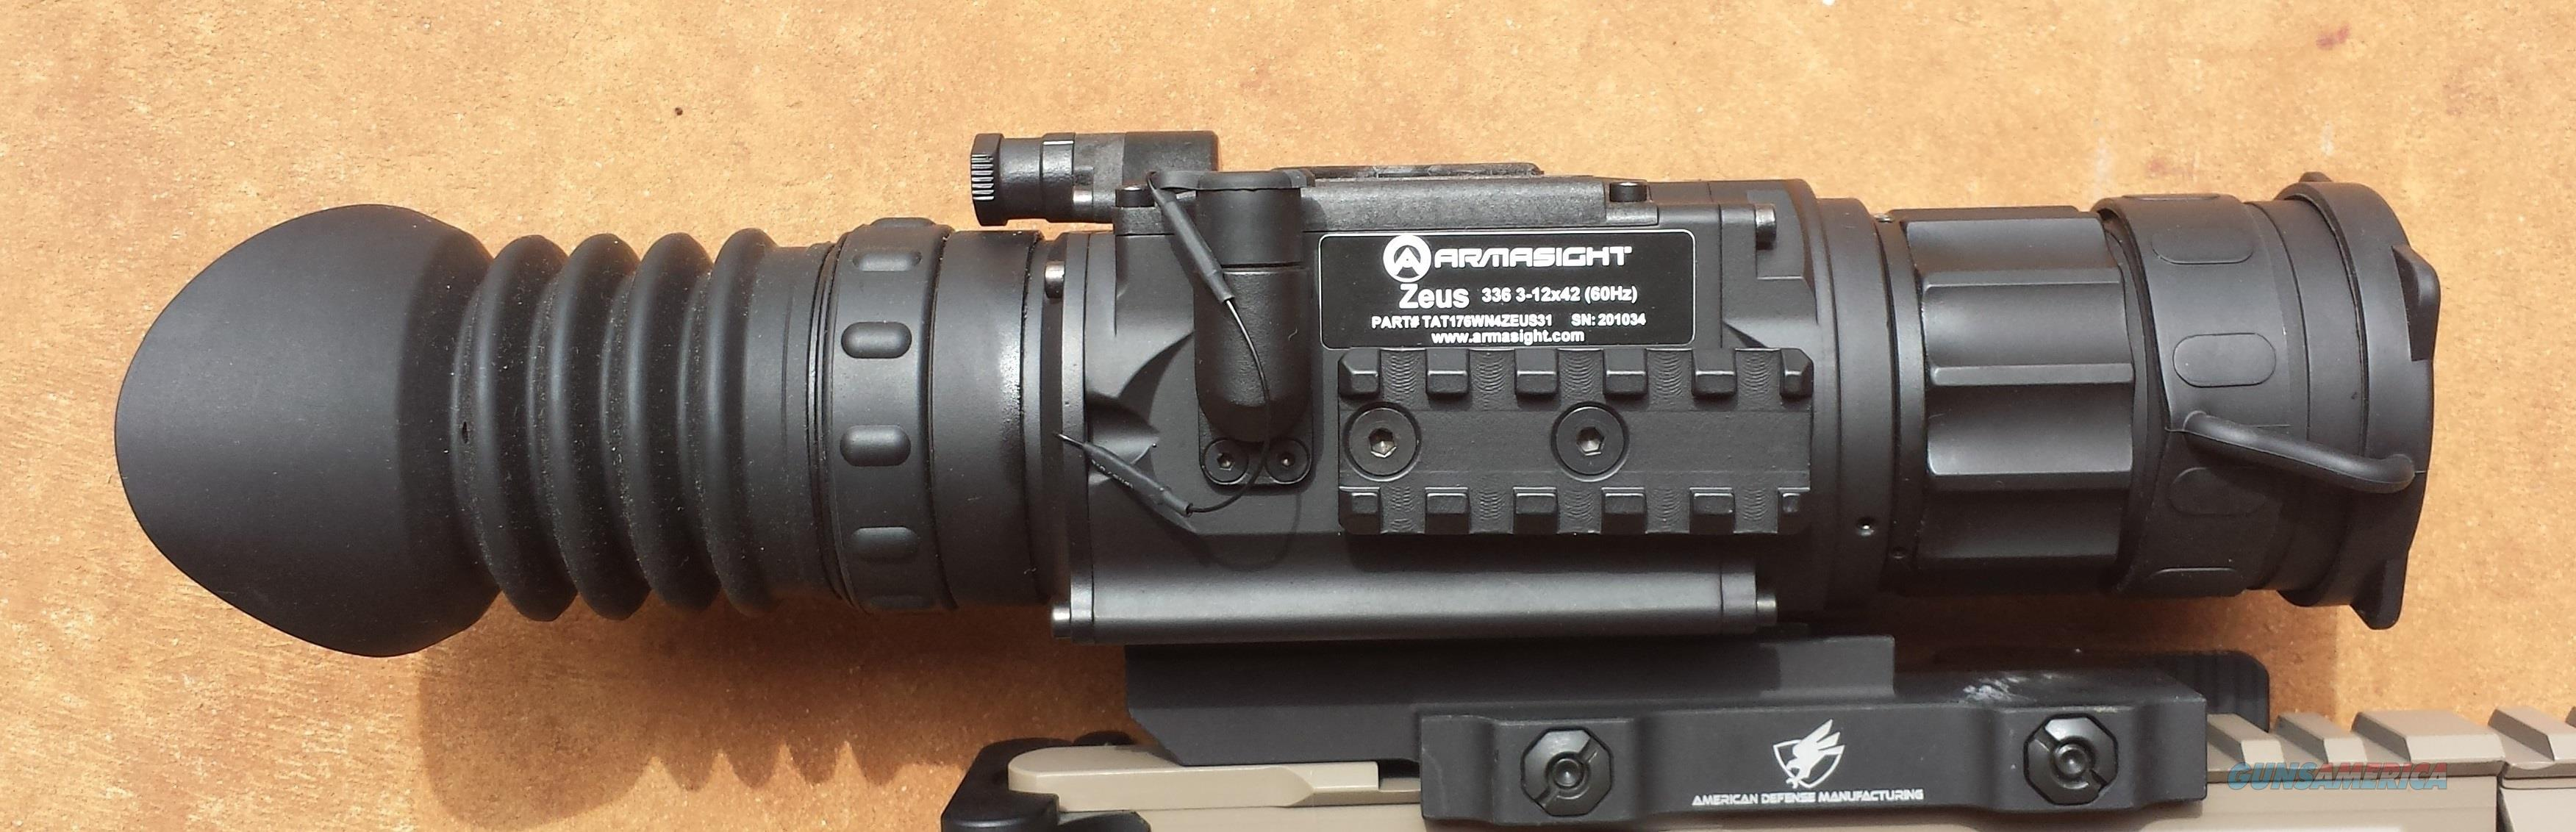 Armasight Zeus 336 3-12x42 (60 Hz) Thermal Scope  Non-Guns > Night Vision